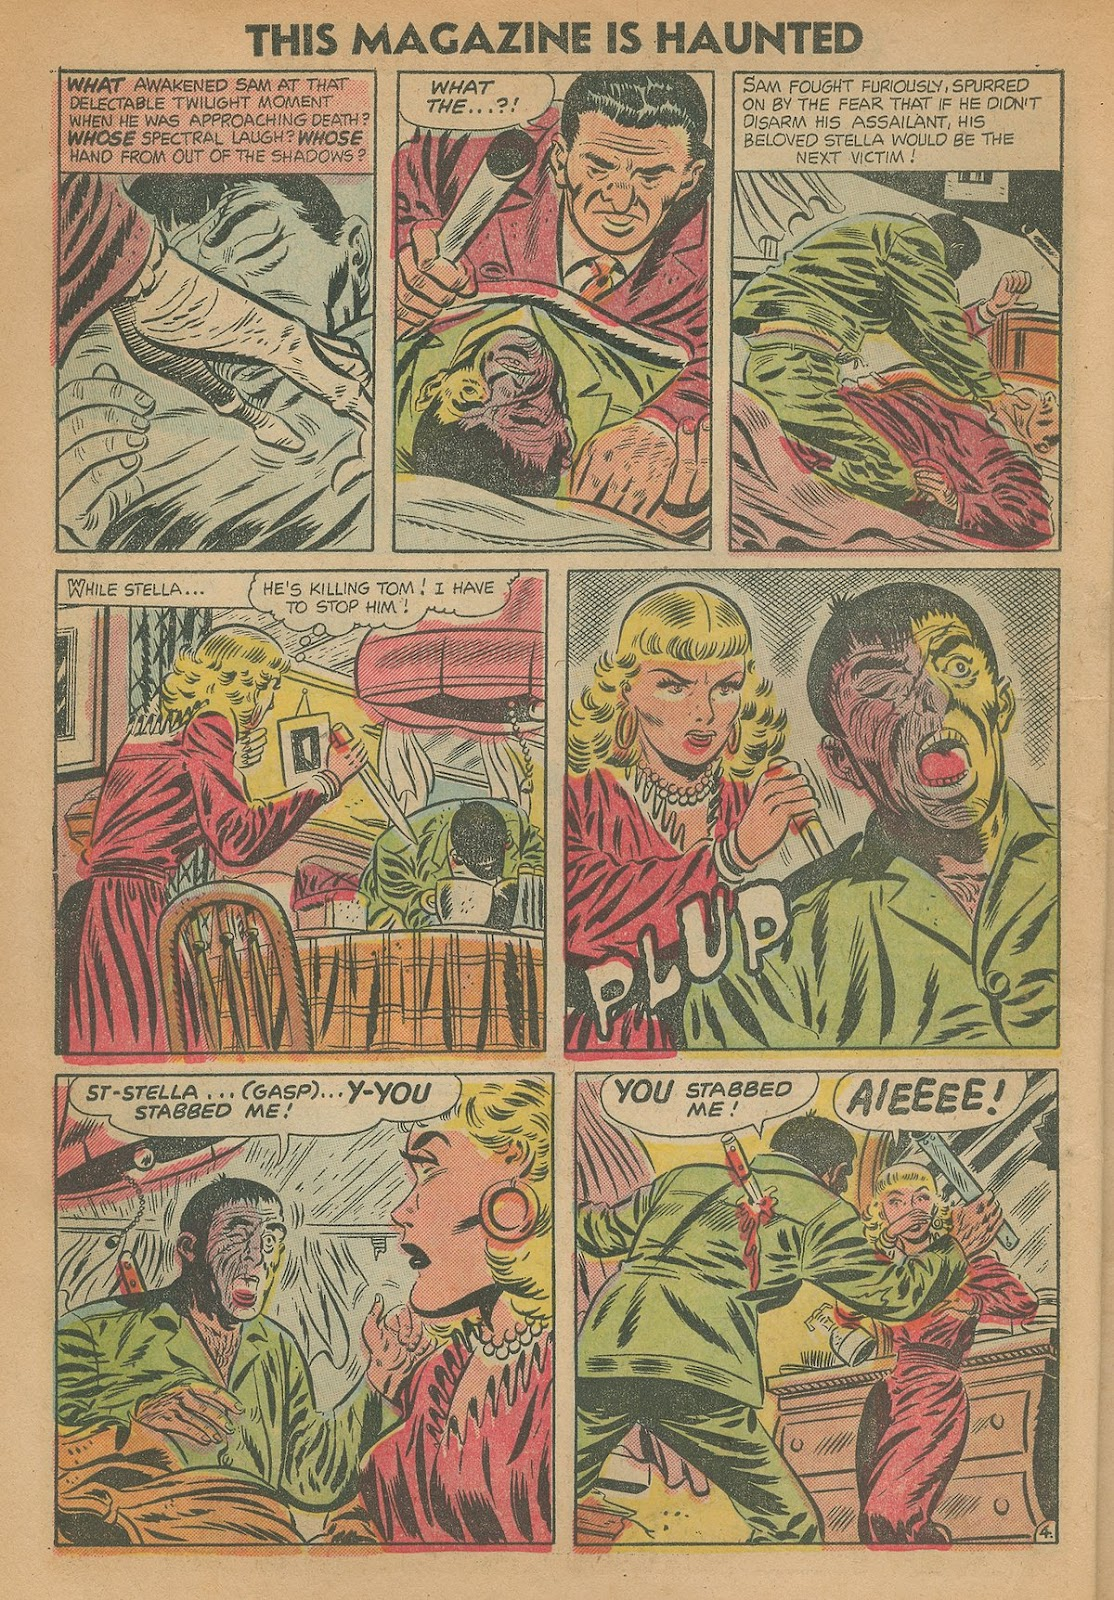 Read online This Magazine Is Haunted comic -  Issue #19 - 6